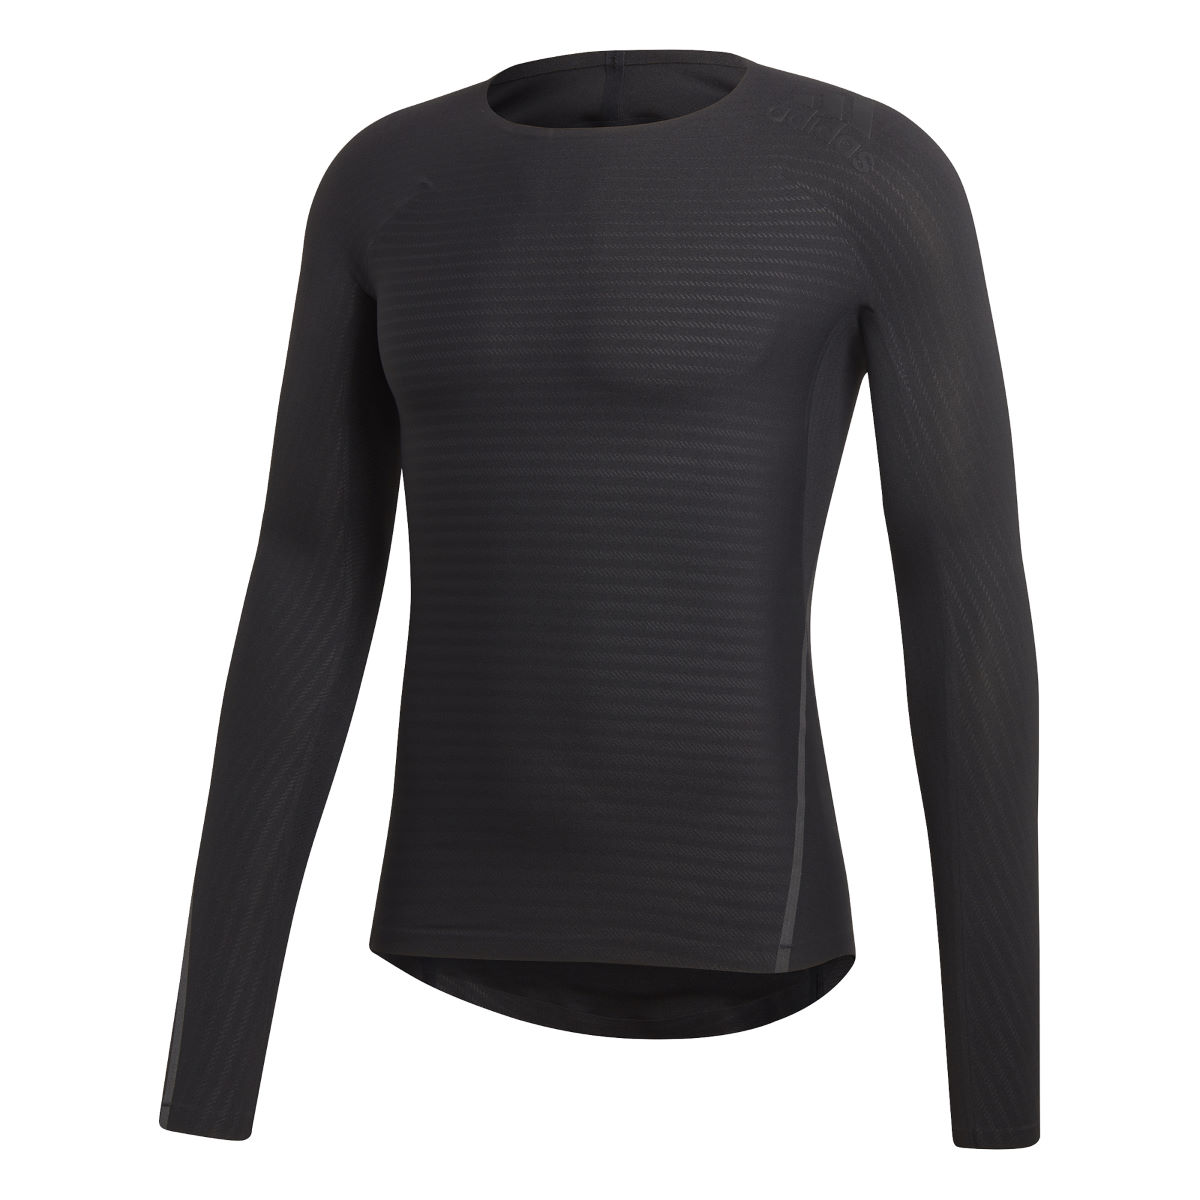 Maillot Adidas Alphaskin 360 (manches longues) - L BLACK